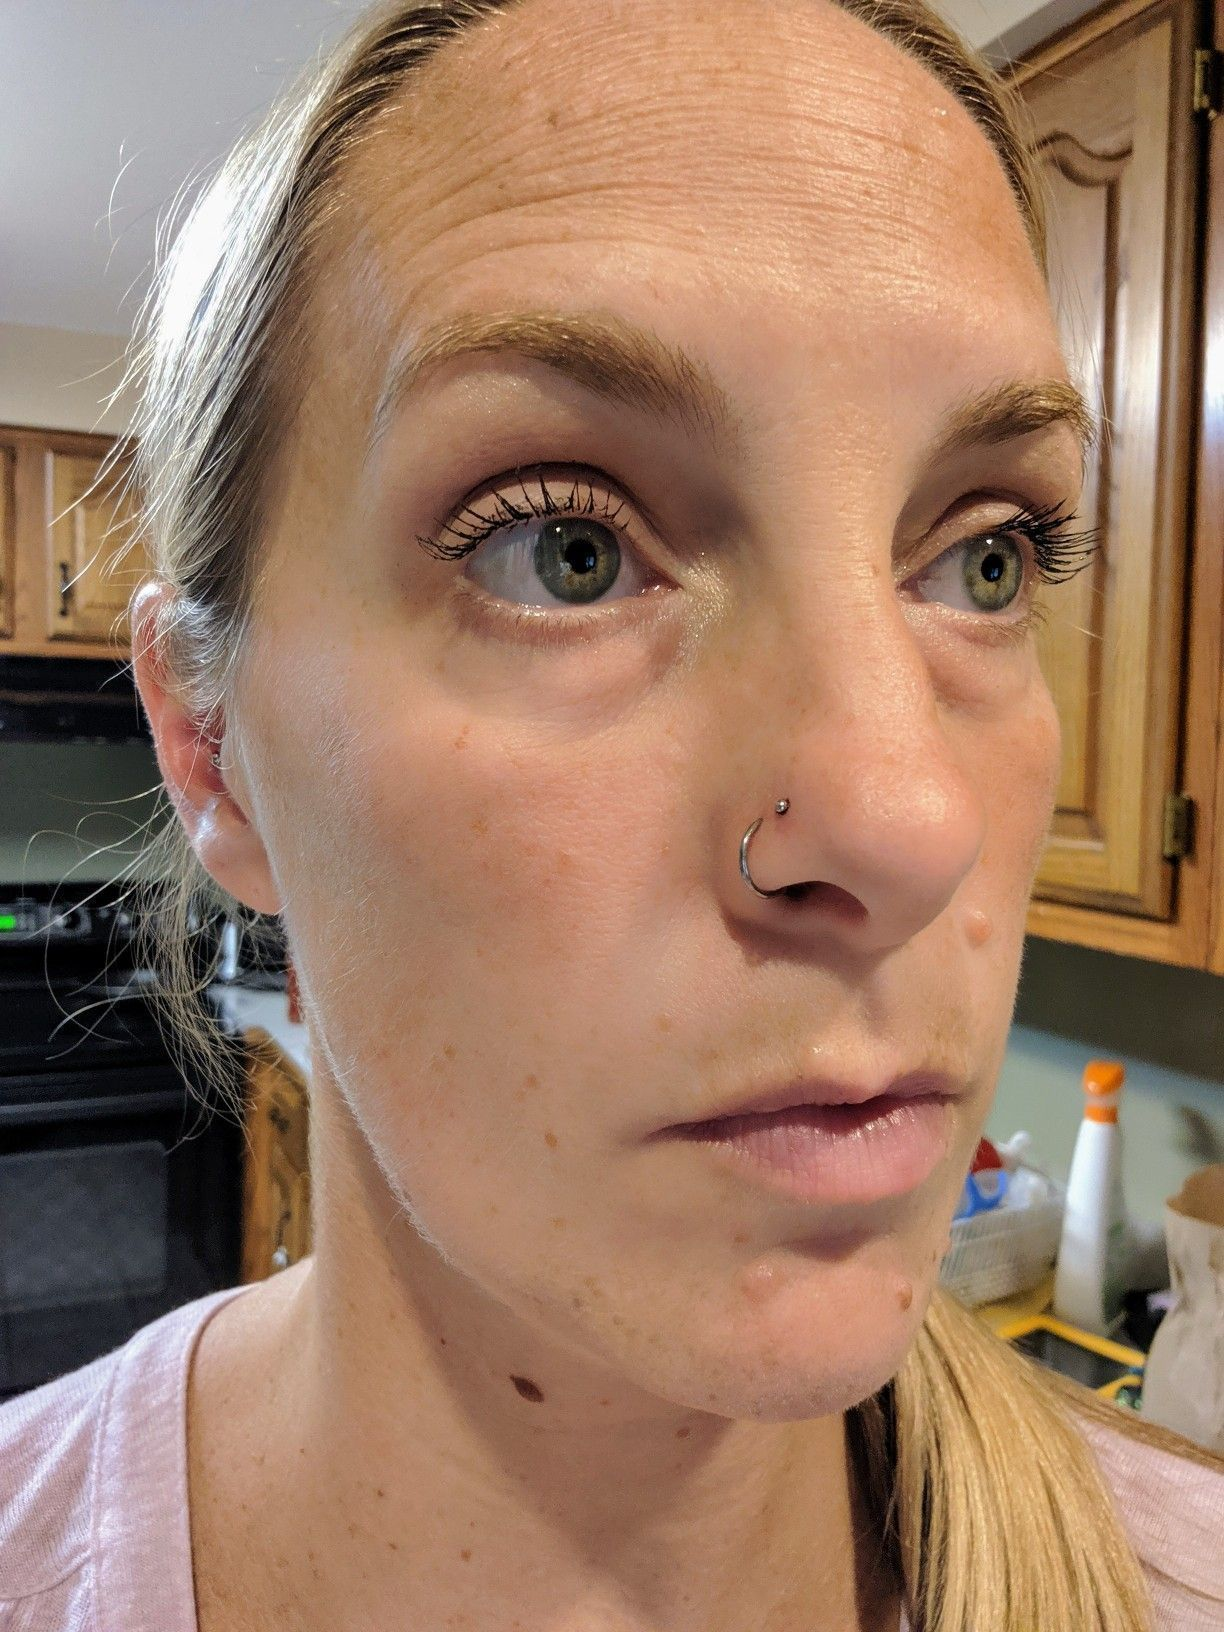 Double nose piercing #doublenosepiercing Double nose piercing #doublenosepiercing Double nose piercing #doublenosepiercing Double nose piercing #doublenosepiercing Double nose piercing #doublenosepiercing Double nose piercing #doublenosepiercing Double nose piercing #doublenosepiercing Double nose piercing #doublenosepiercing Double nose piercing #doublenosepiercing Double nose piercing #doublenosepiercing Double nose piercing #doublenosepiercing Double nose piercing #doublenosepiercing Double n